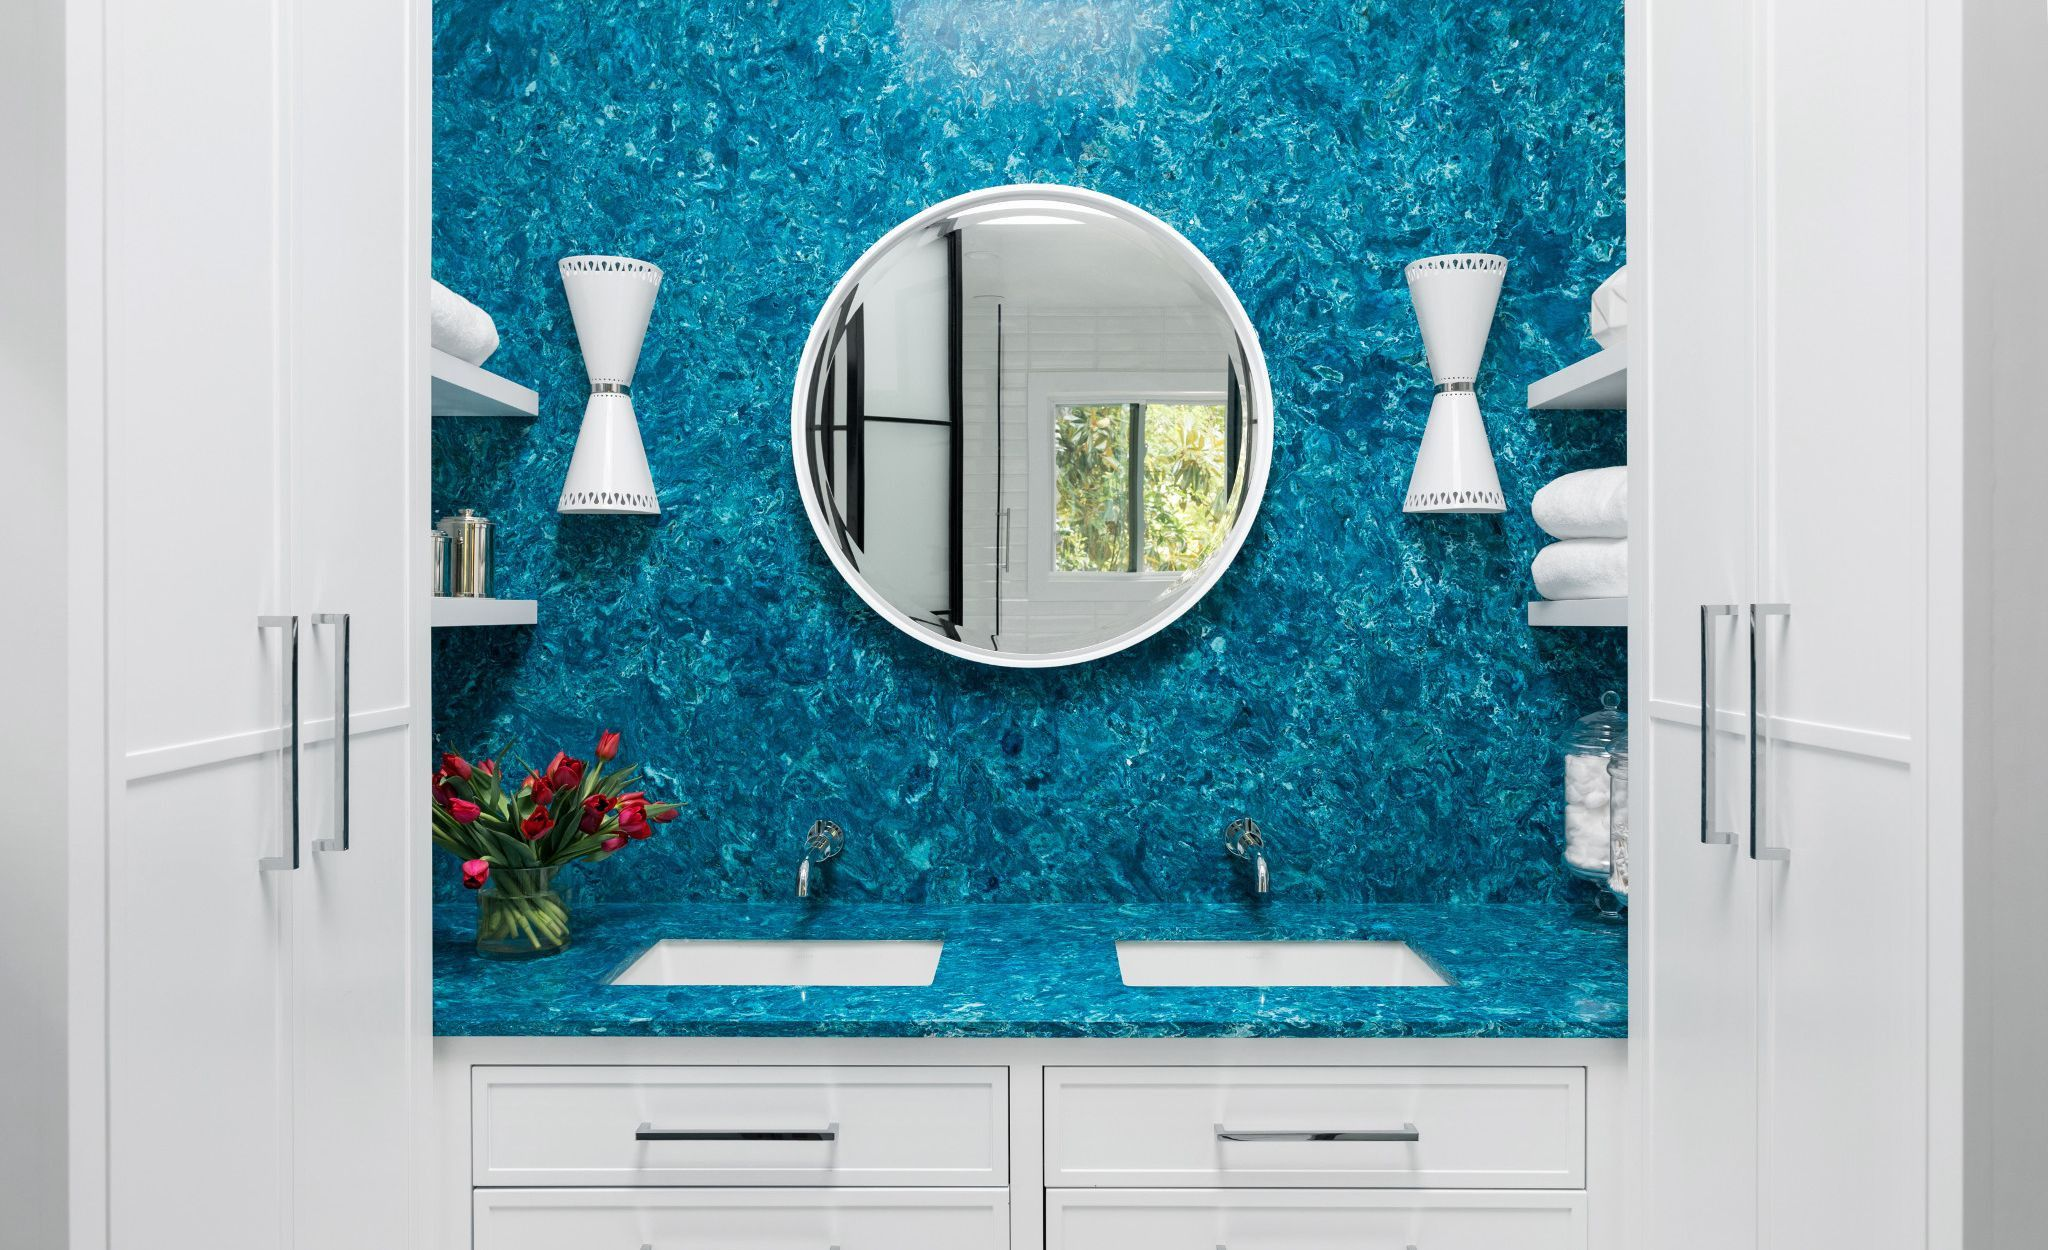 Cambria Skye is a mesmerizing bathroom vanity backsplash in this blue bathroom.